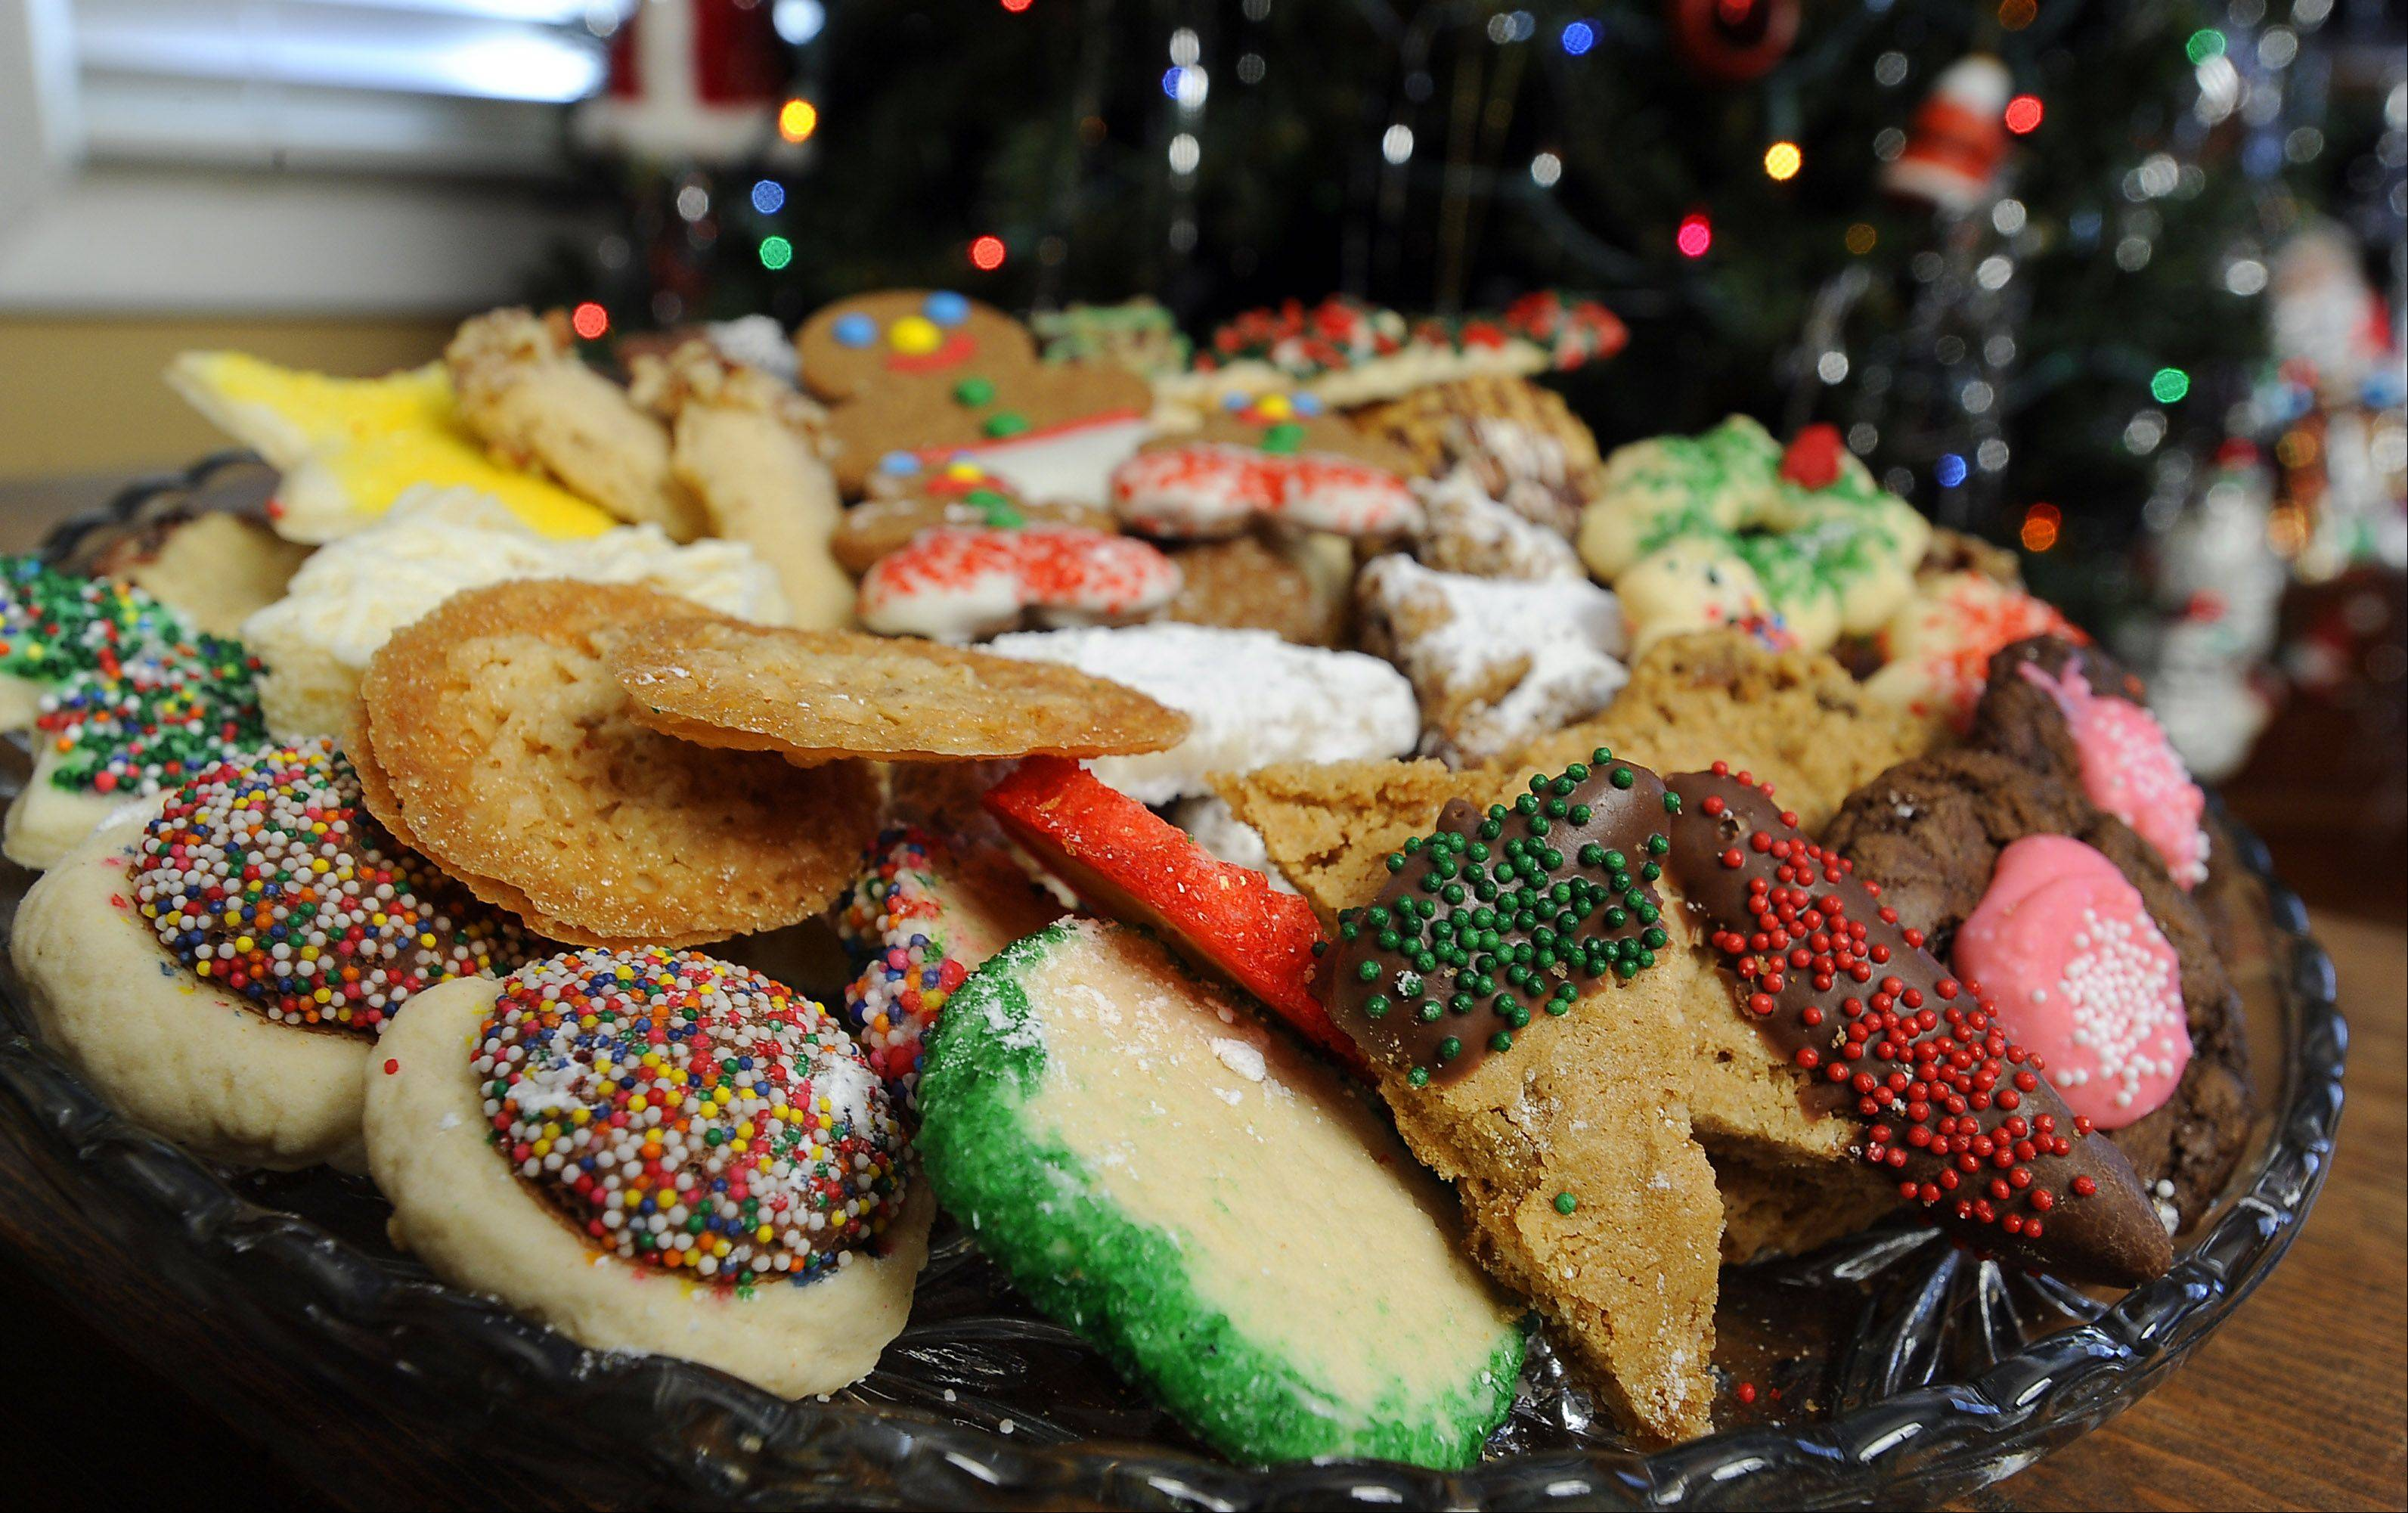 Cook of the Week: Baker rolls through the holidays with thousands of cookies